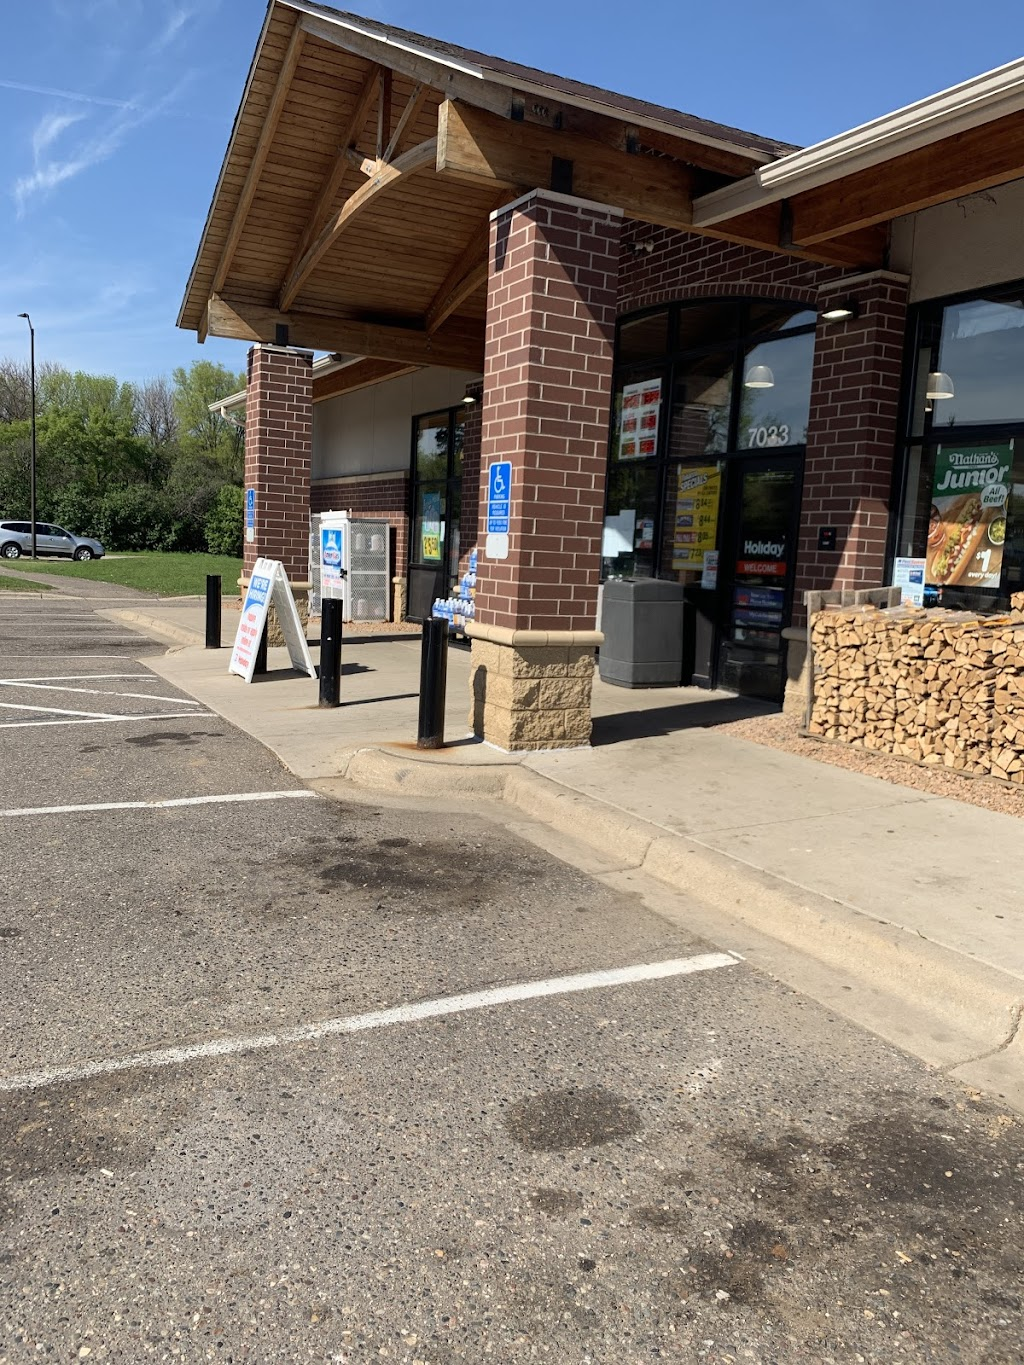 Holiday Stationstores - convenience store  | Photo 5 of 5 | Address: 7033 Jorgensen Ln S, Cottage Grove, MN 55016, USA | Phone: (651) 458-8080